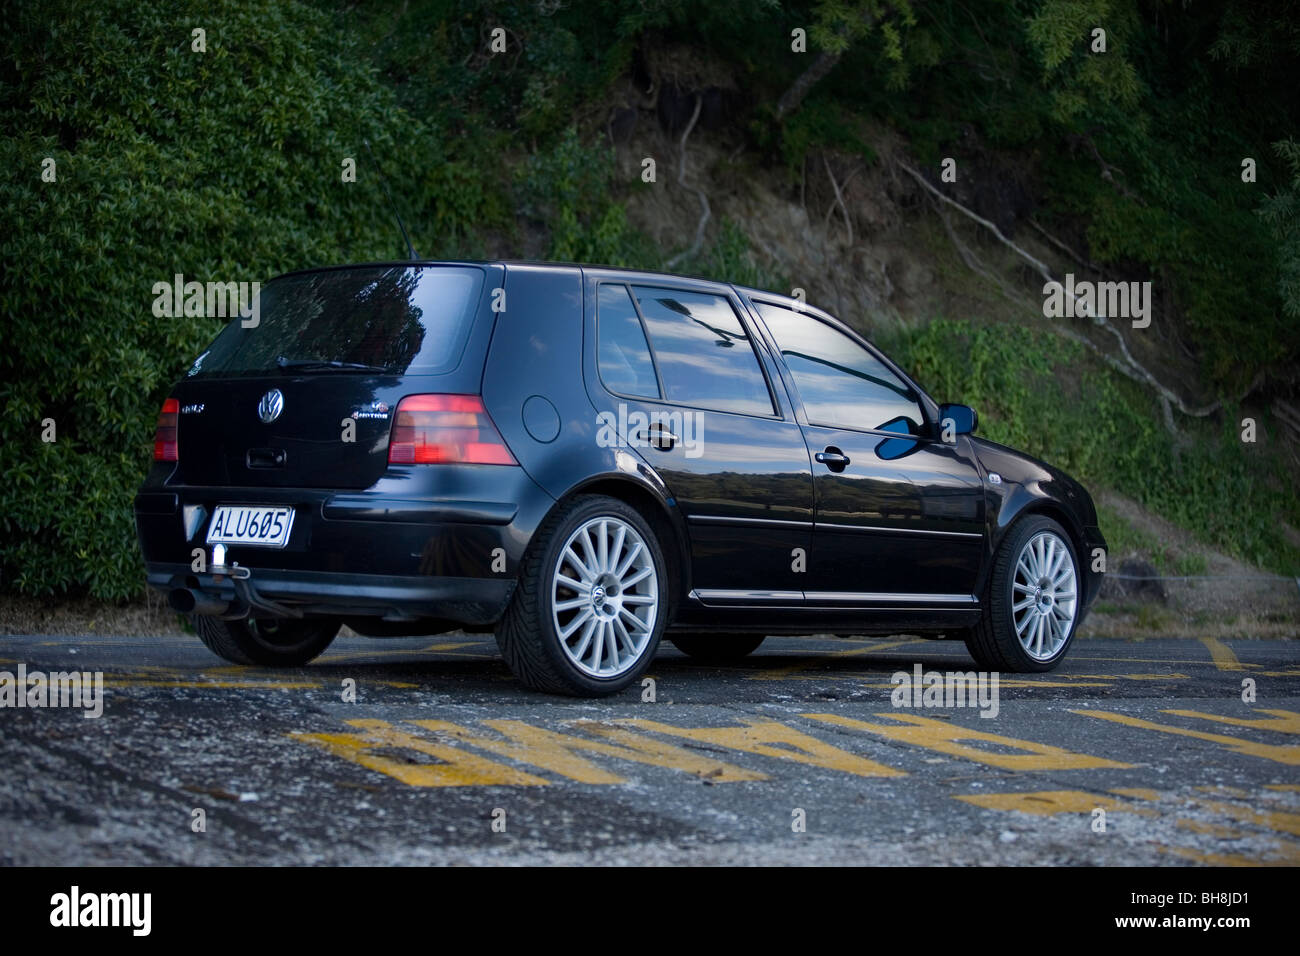 2002 black volkswagen 2 8l v6 6 speed manual 4motion golf with r32 stock photo 27849613 alamy. Black Bedroom Furniture Sets. Home Design Ideas